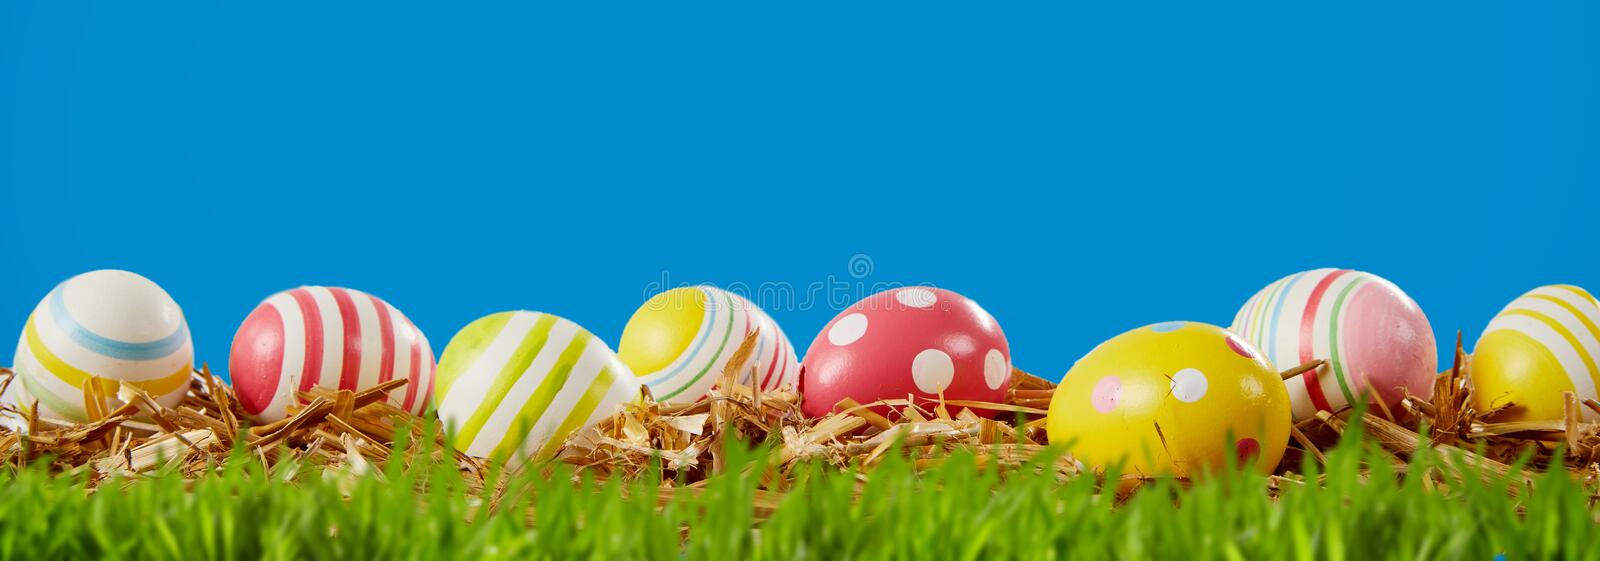 Happy Easter panorama banner with eggs in a meadow royalty free stock photo